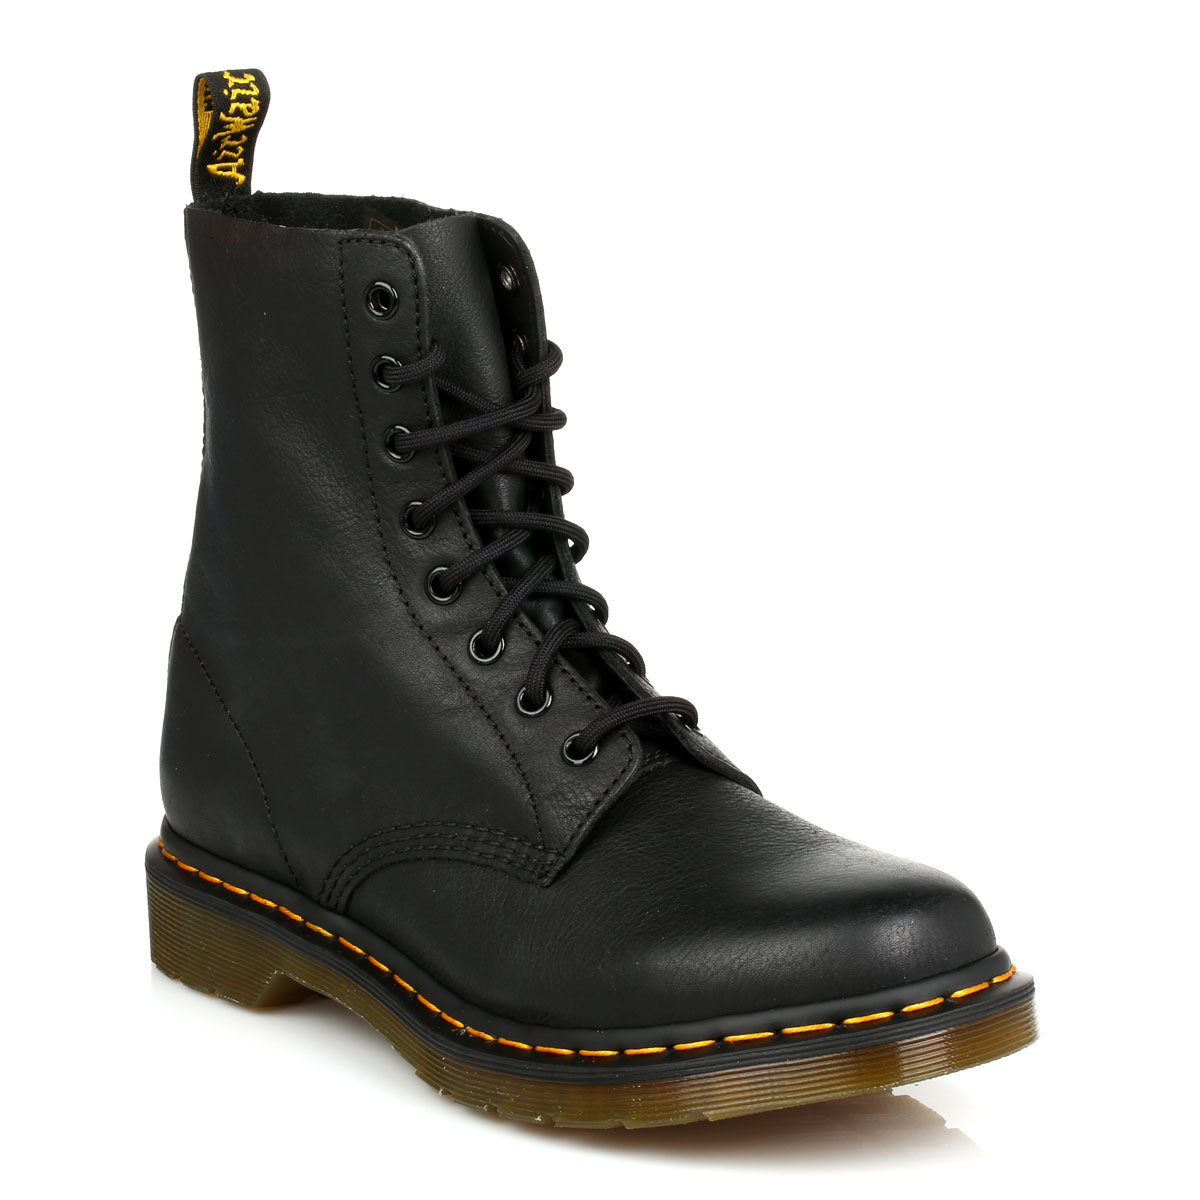 Dr. Dr. Martens Leather Ankle Boots Bottines En Cuir Martres dohihy